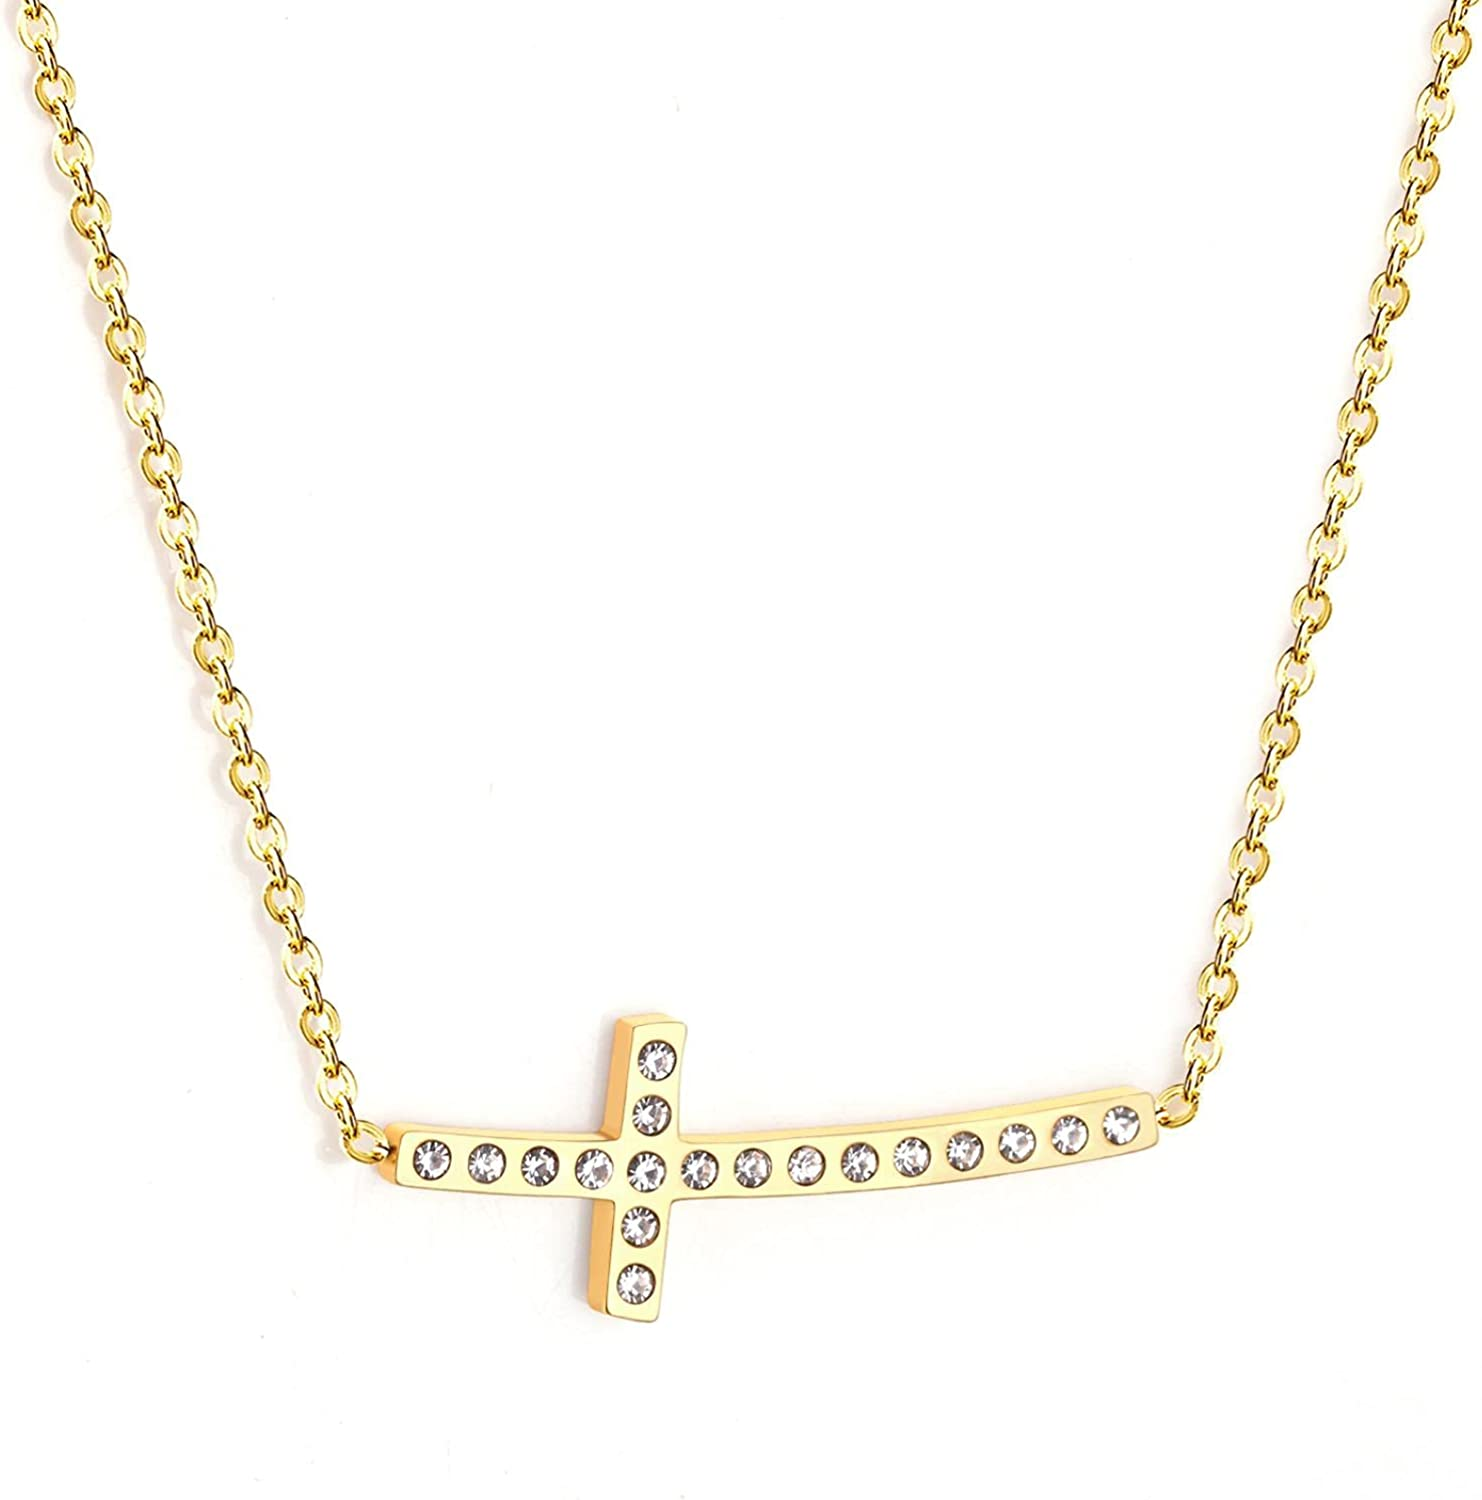 Friend Necklace Gold Color Cross Pendant Necklace Stainless Steel Collars Choker Party